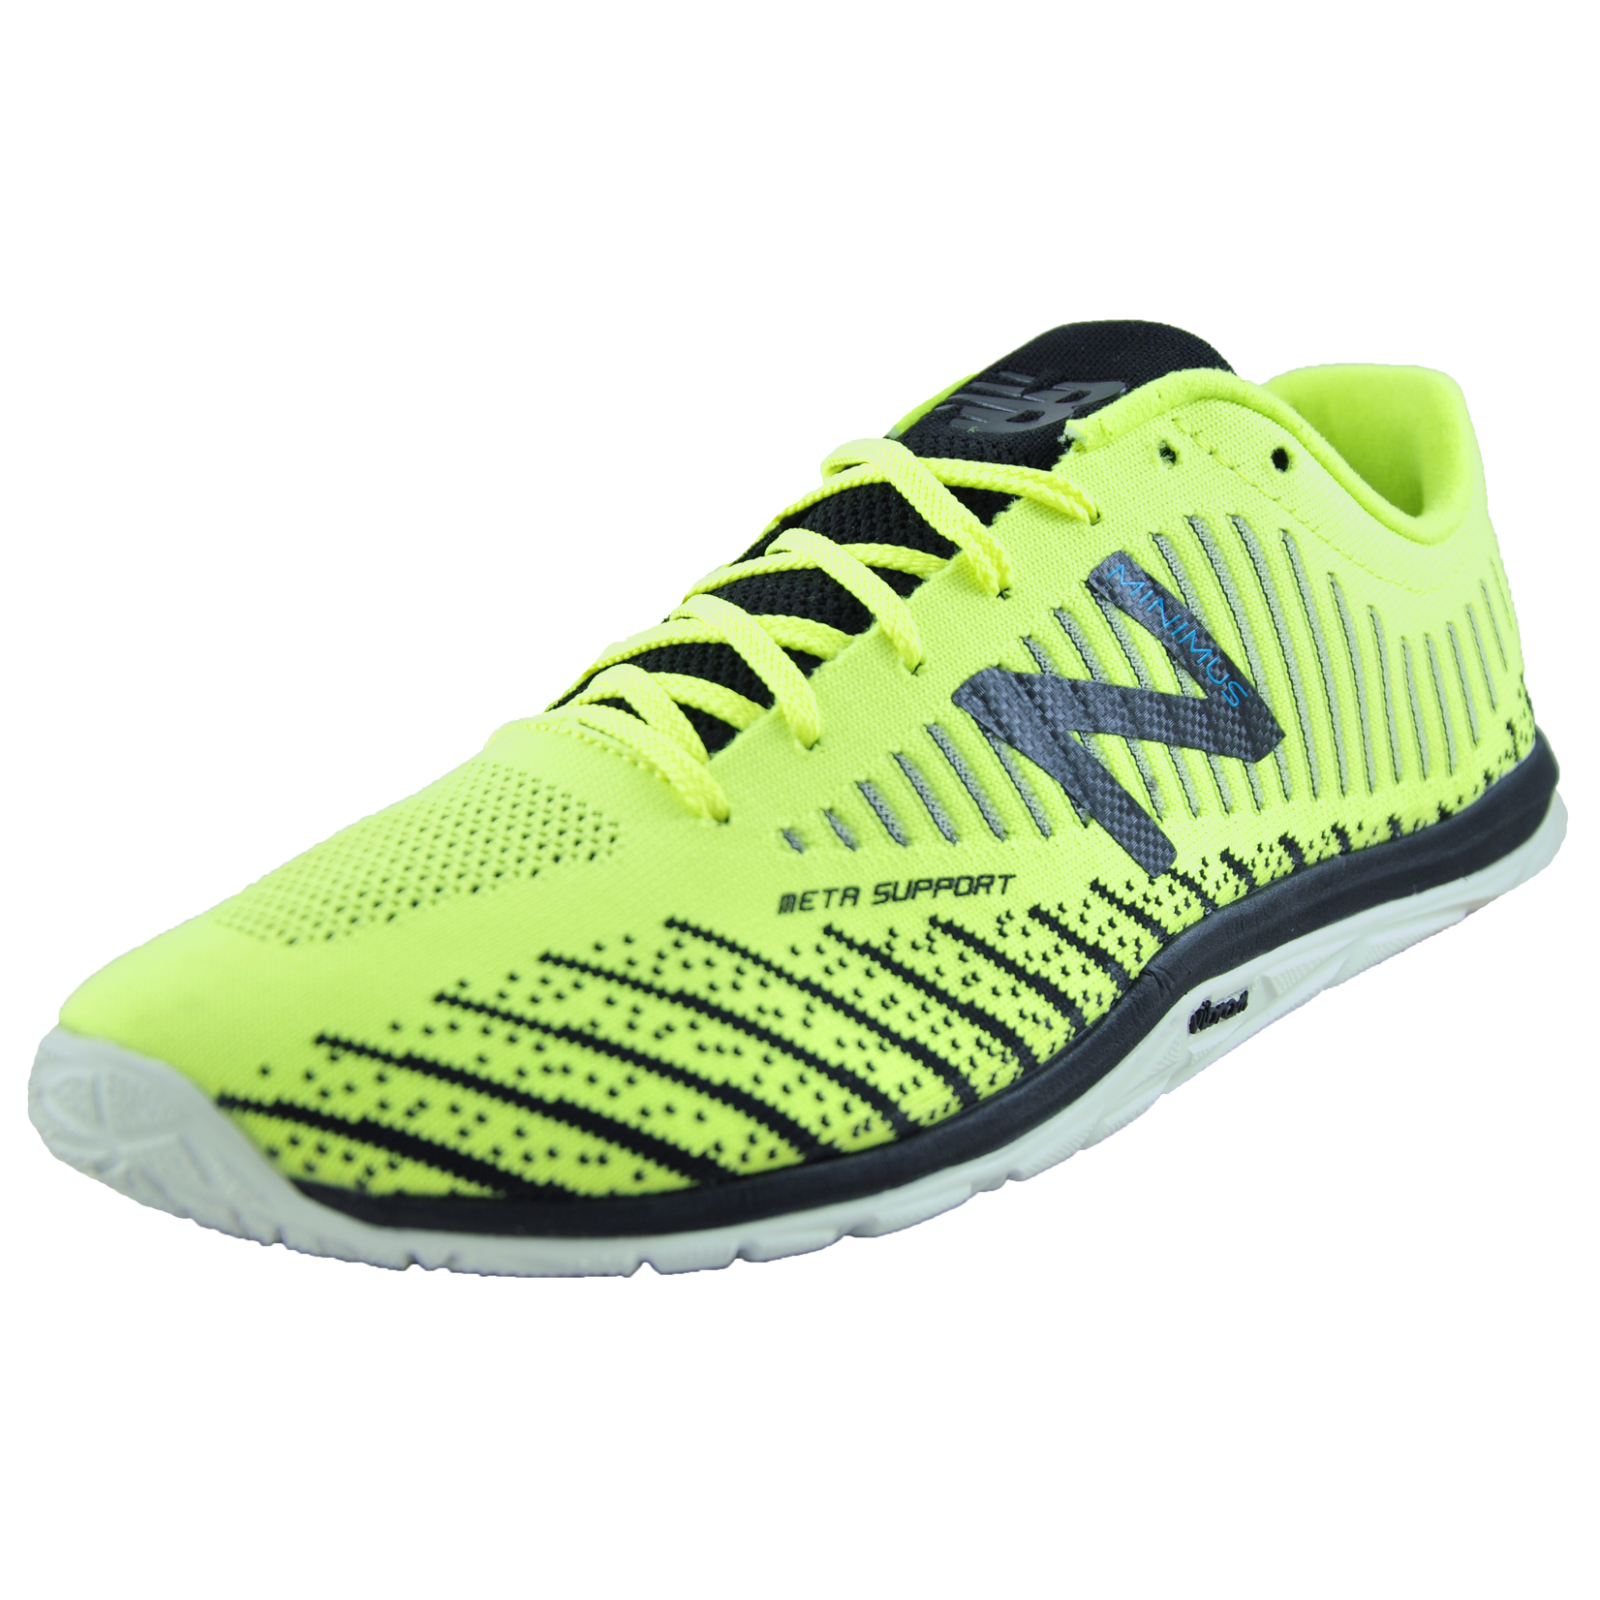 c89f30fa Details about New Balance Minimus MX20 v7 Men's Cross Training Running Shoes  Fitness Trainers